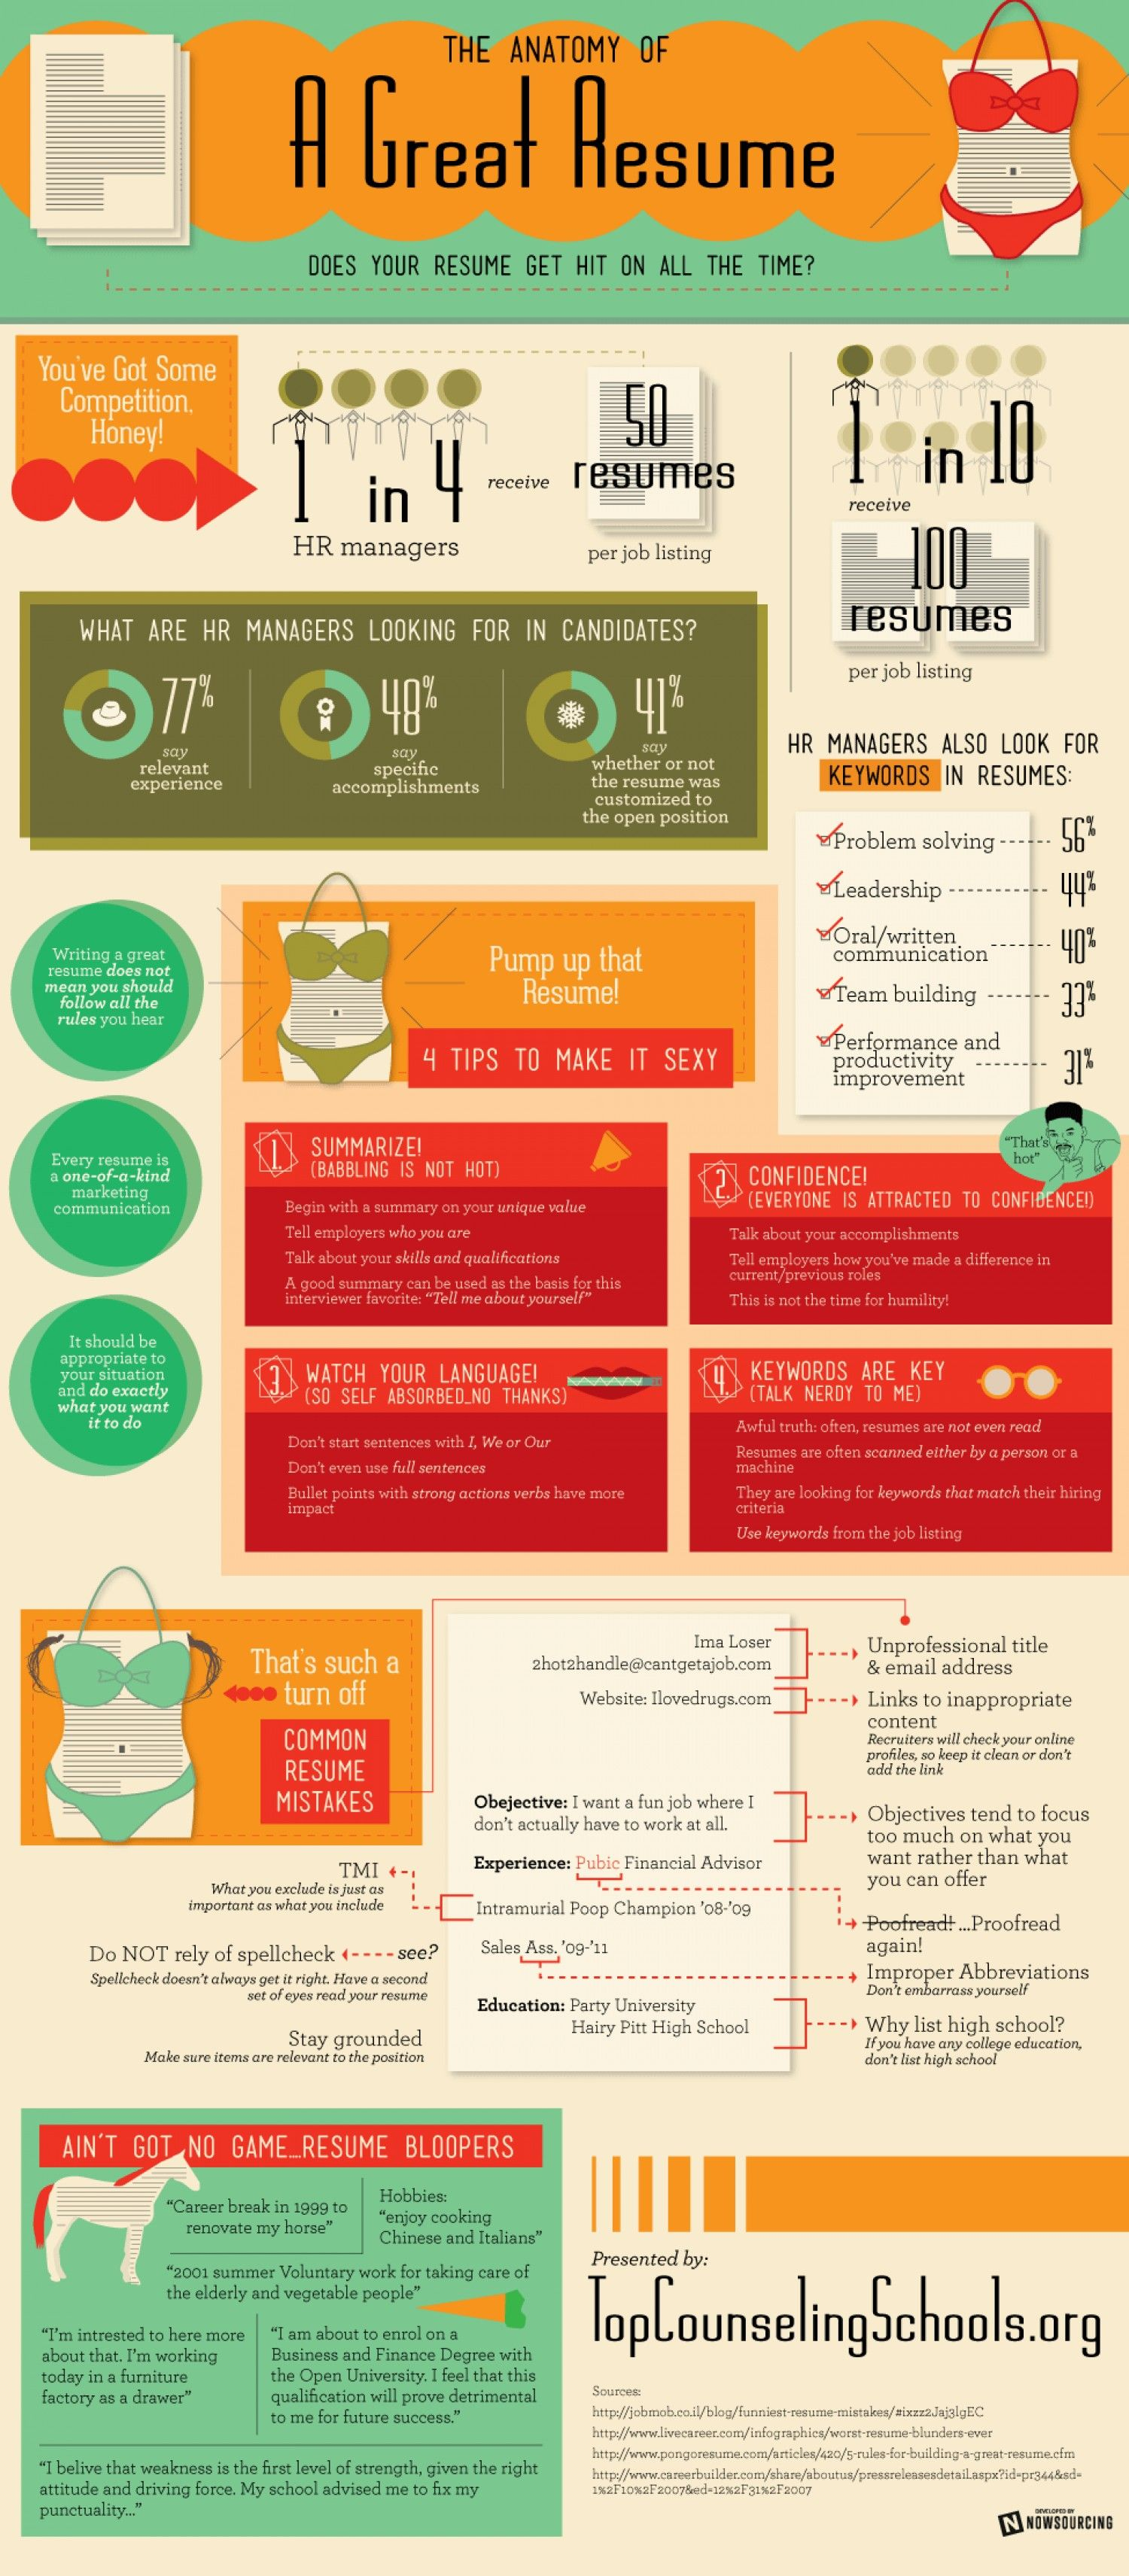 the anatomy of a great resume infographic